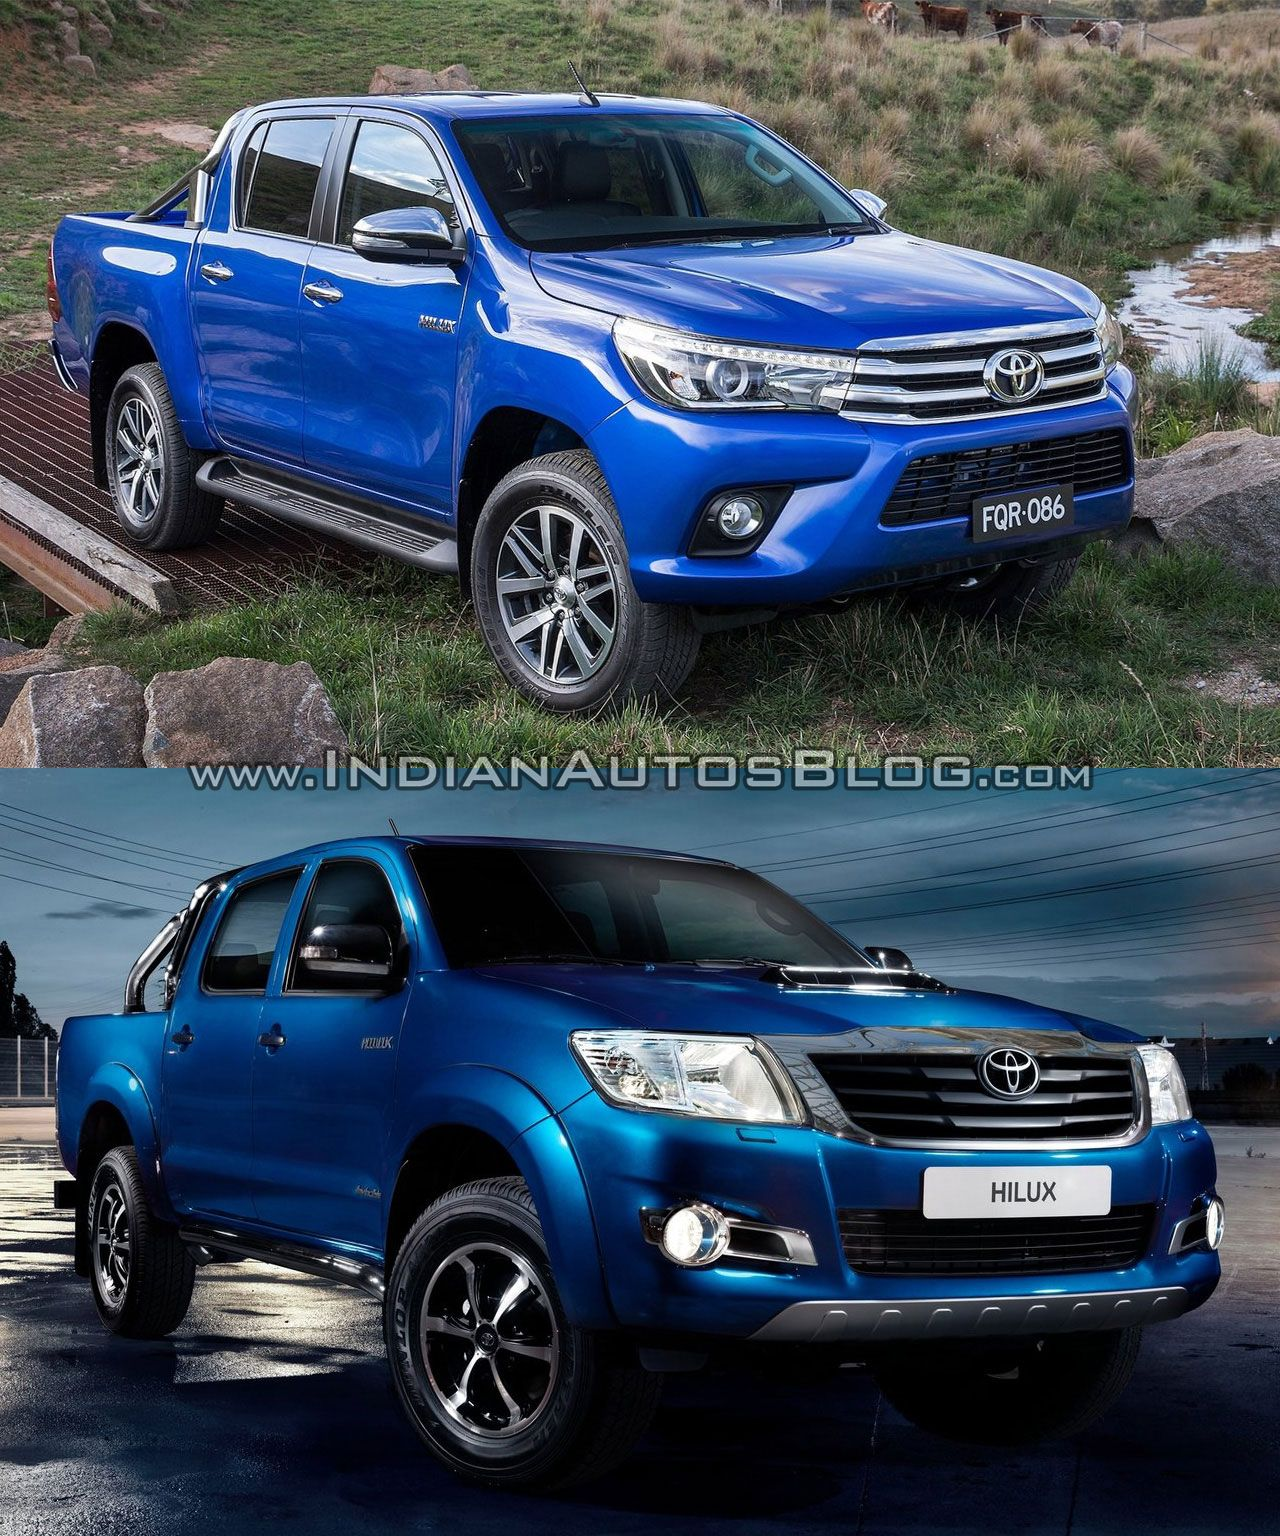 Toyota hilux vigo vs toyota hilux revo old vs new